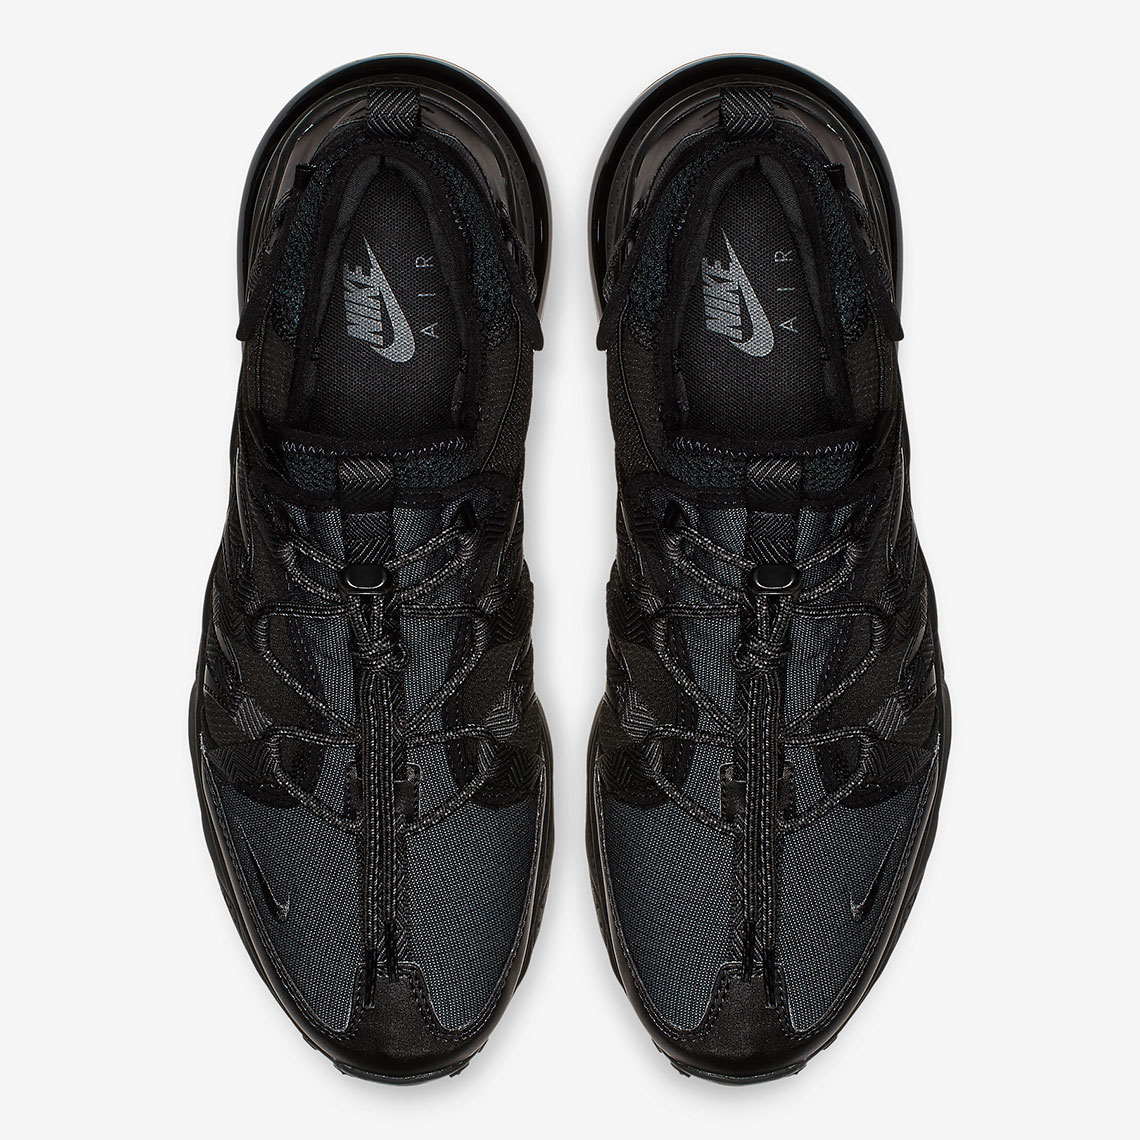 72dfb9c7bff Nike Air Max 270 Bowfin  160. Color  Black Black Anthracite Style Code   AJ7200-005. Where to Buy. NikeAvailable Now